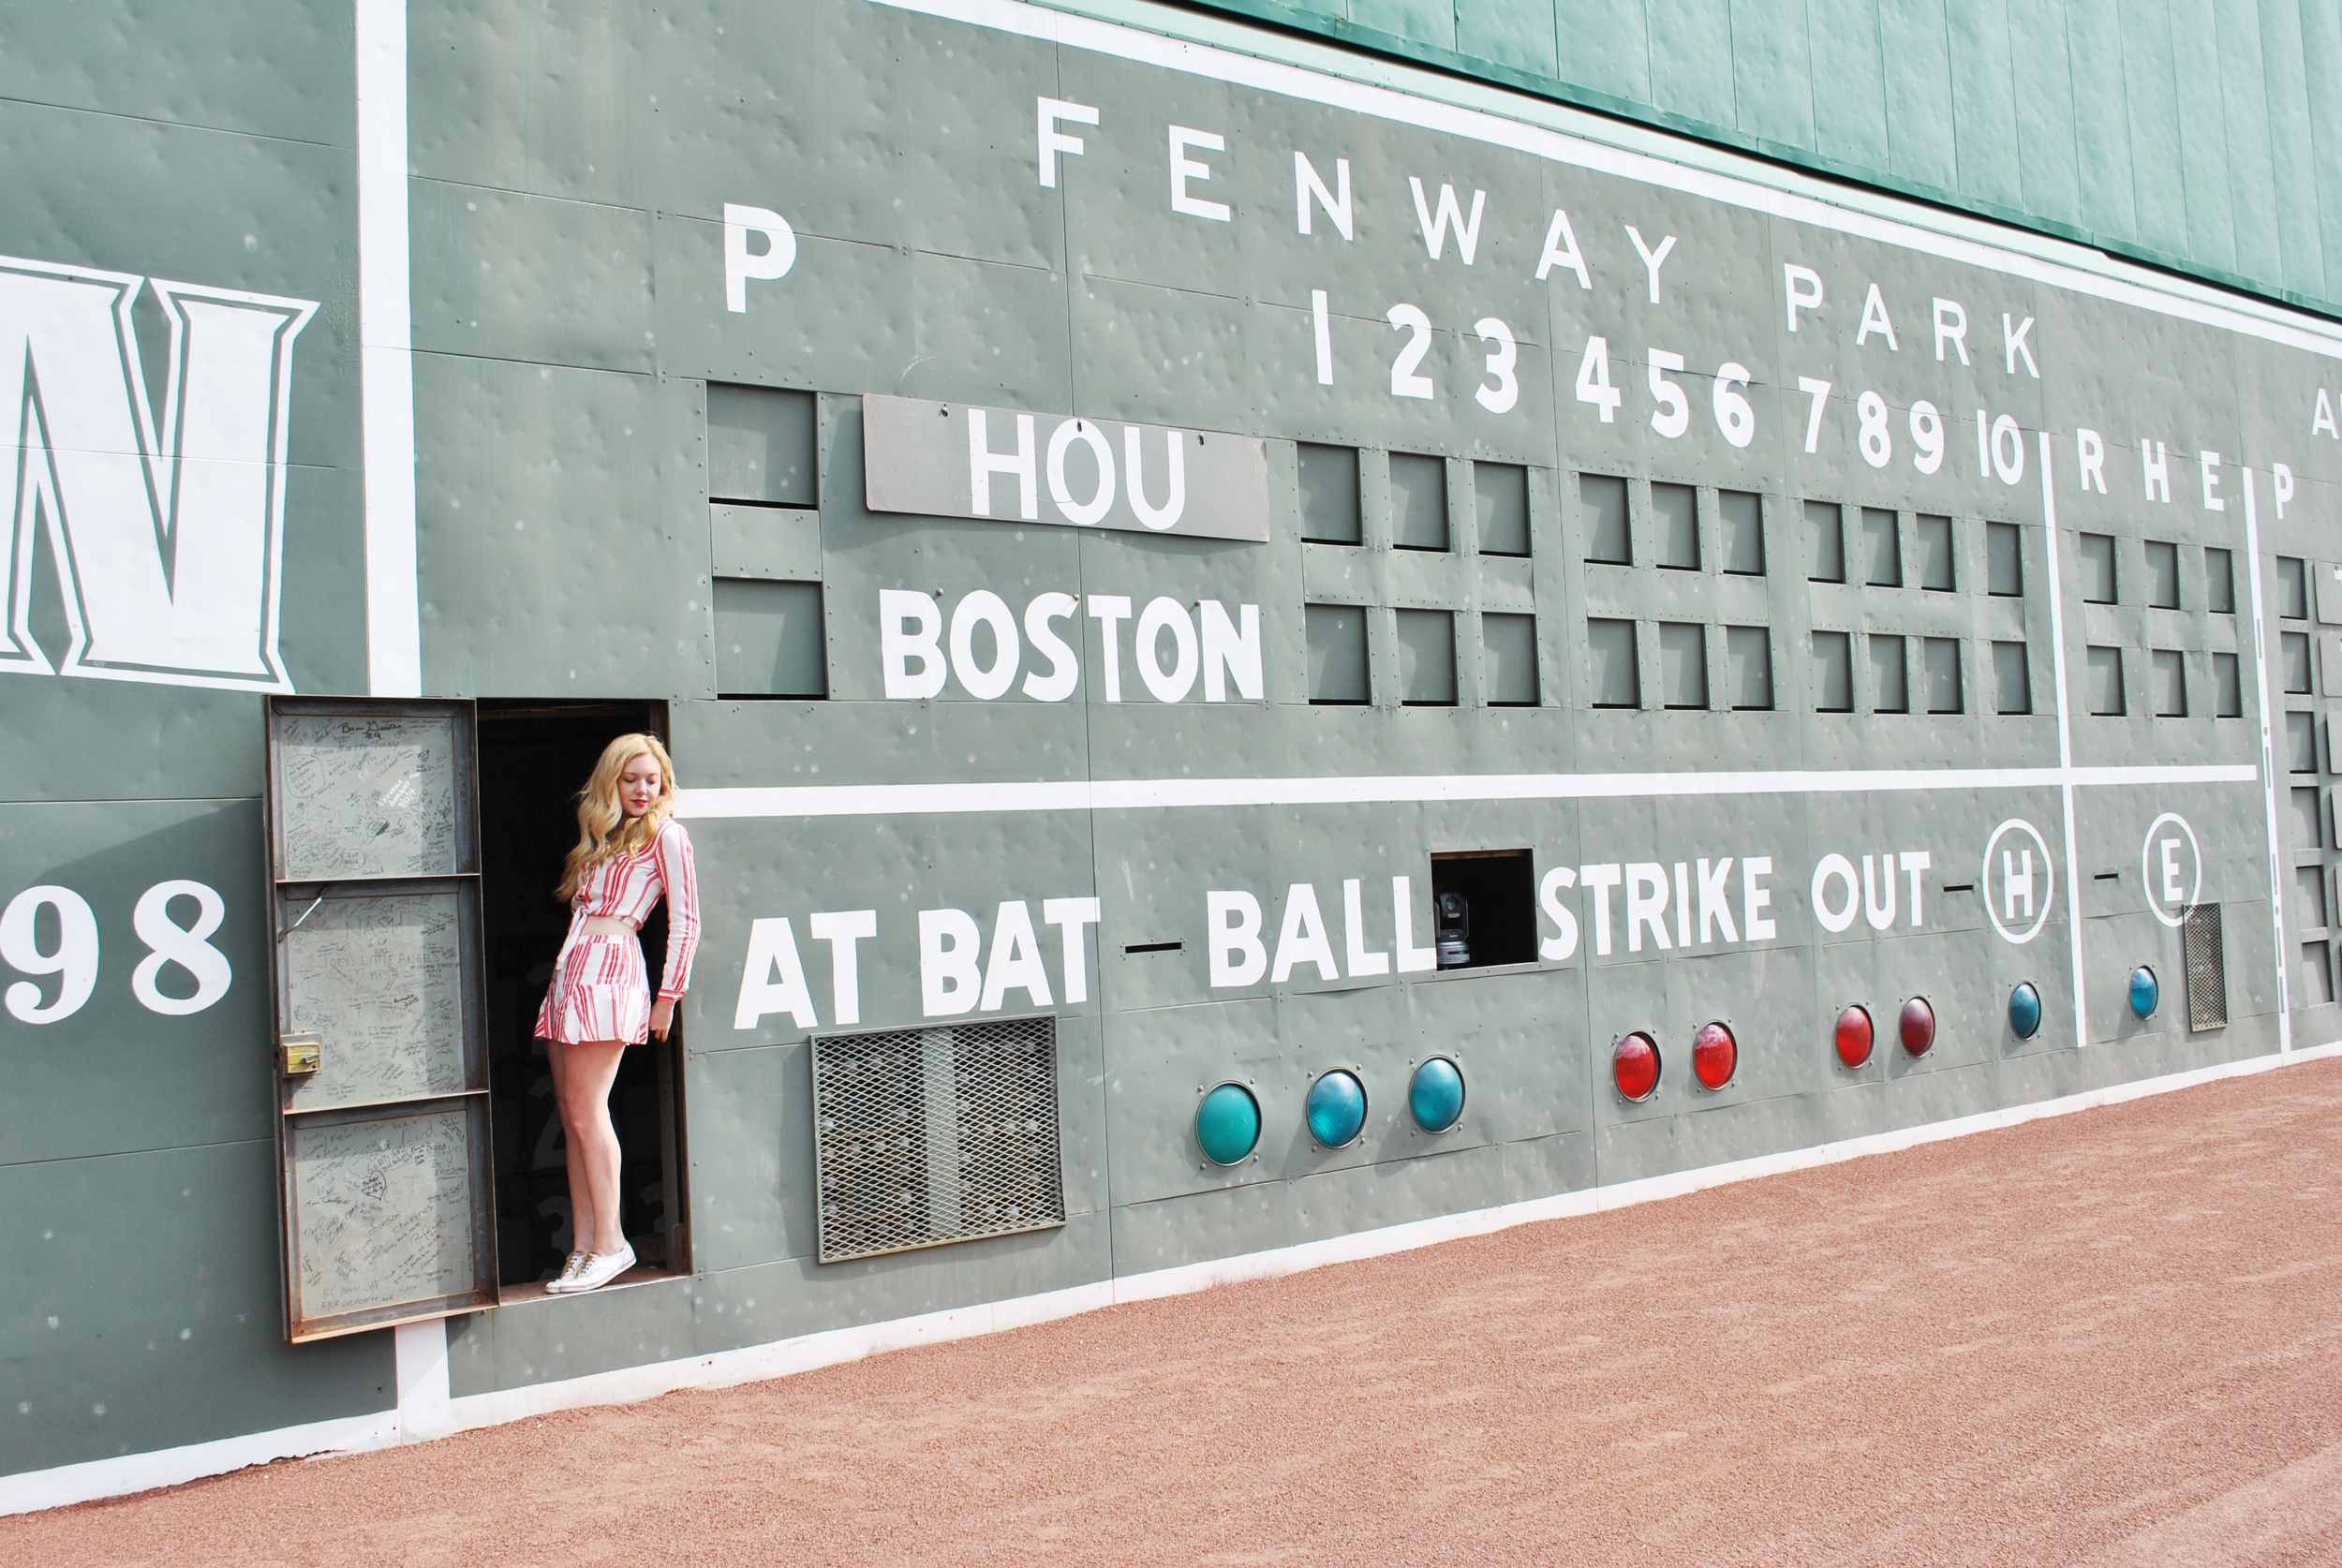 thoughtfulwish | baseball // fashion // fashion blogger // boston blogger // red sox // fenway park // #myfenway // ootd // meredith wish